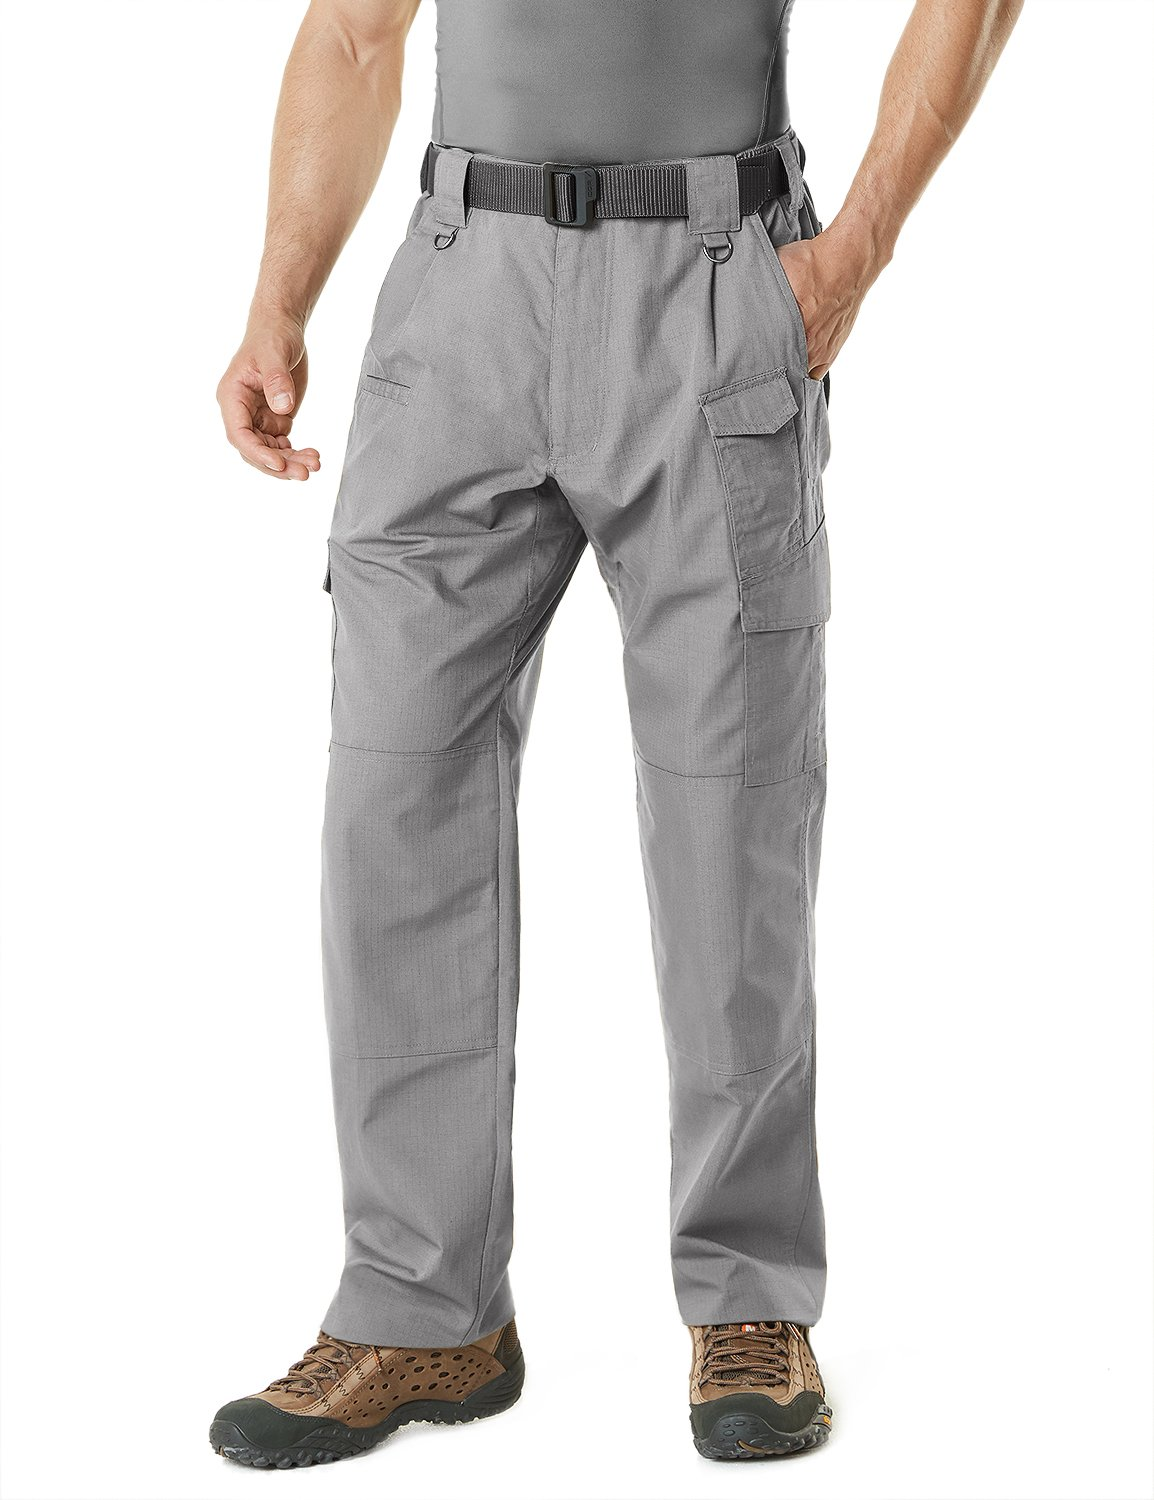 CQR CQ-TLP105-STN_44W/36L Men's Tactical Pants Lightweight EDC Assault Cargo TLP105